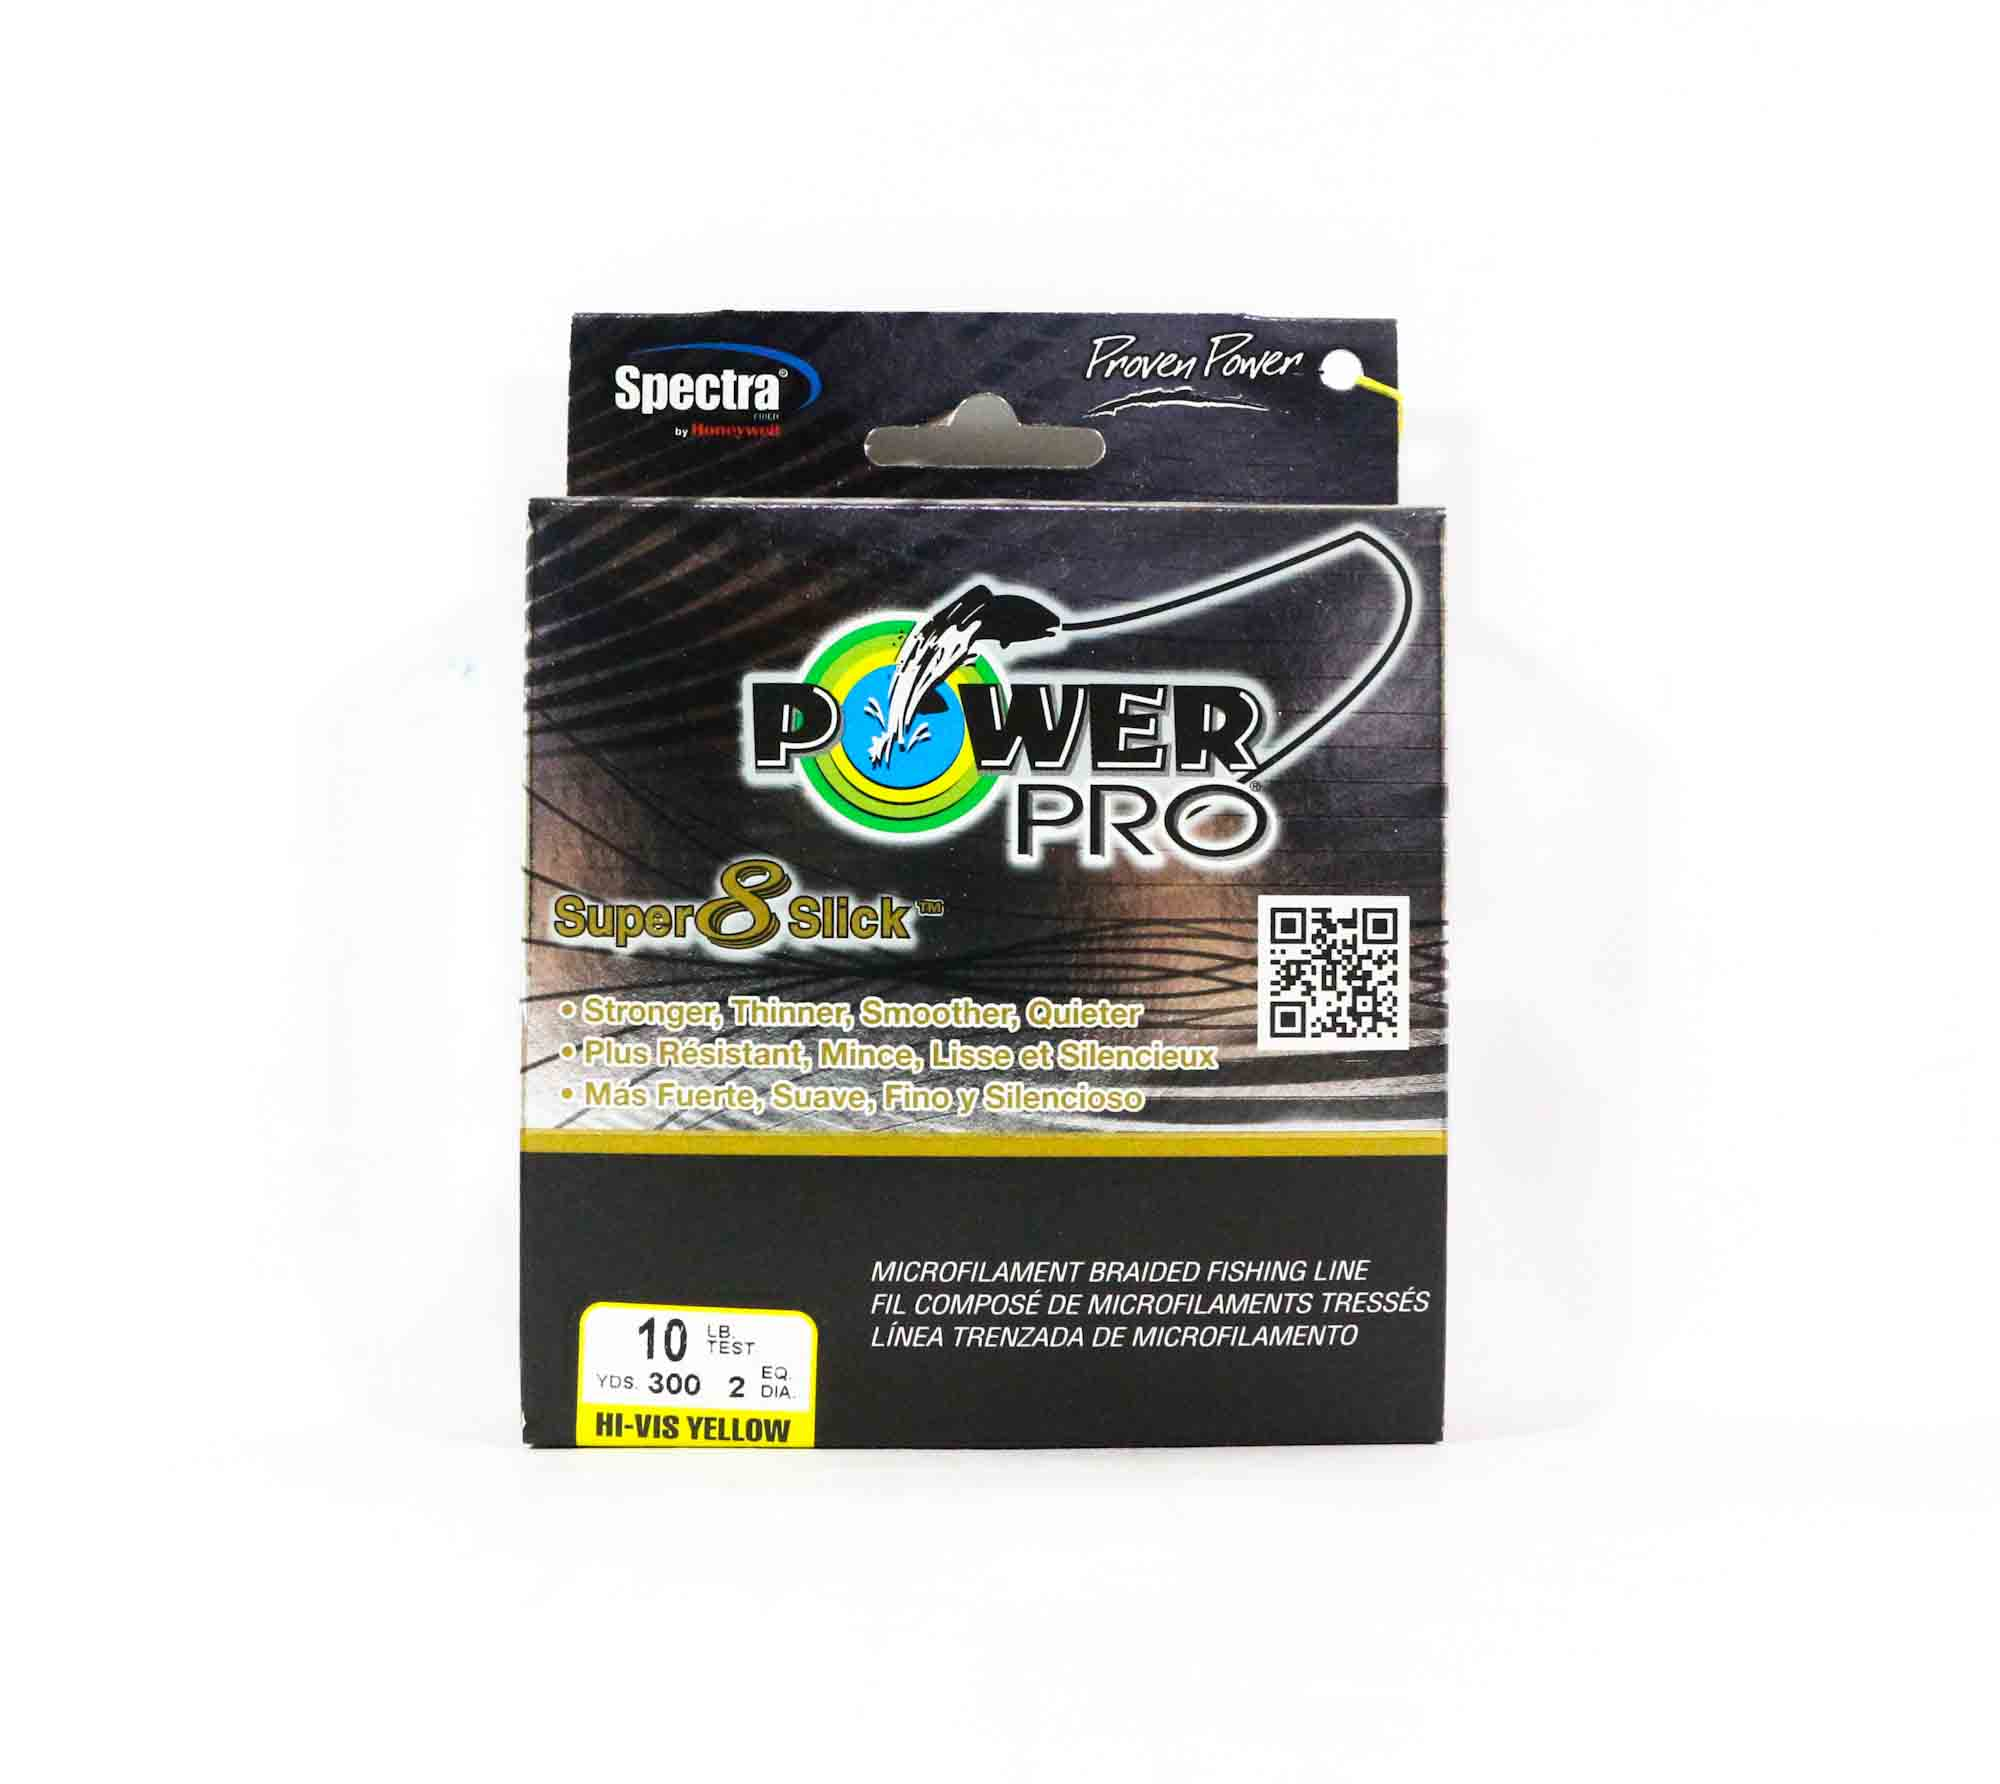 Power Pro Super 8 Slick Spectra Line 10lb by 300yds Yellow (9972)